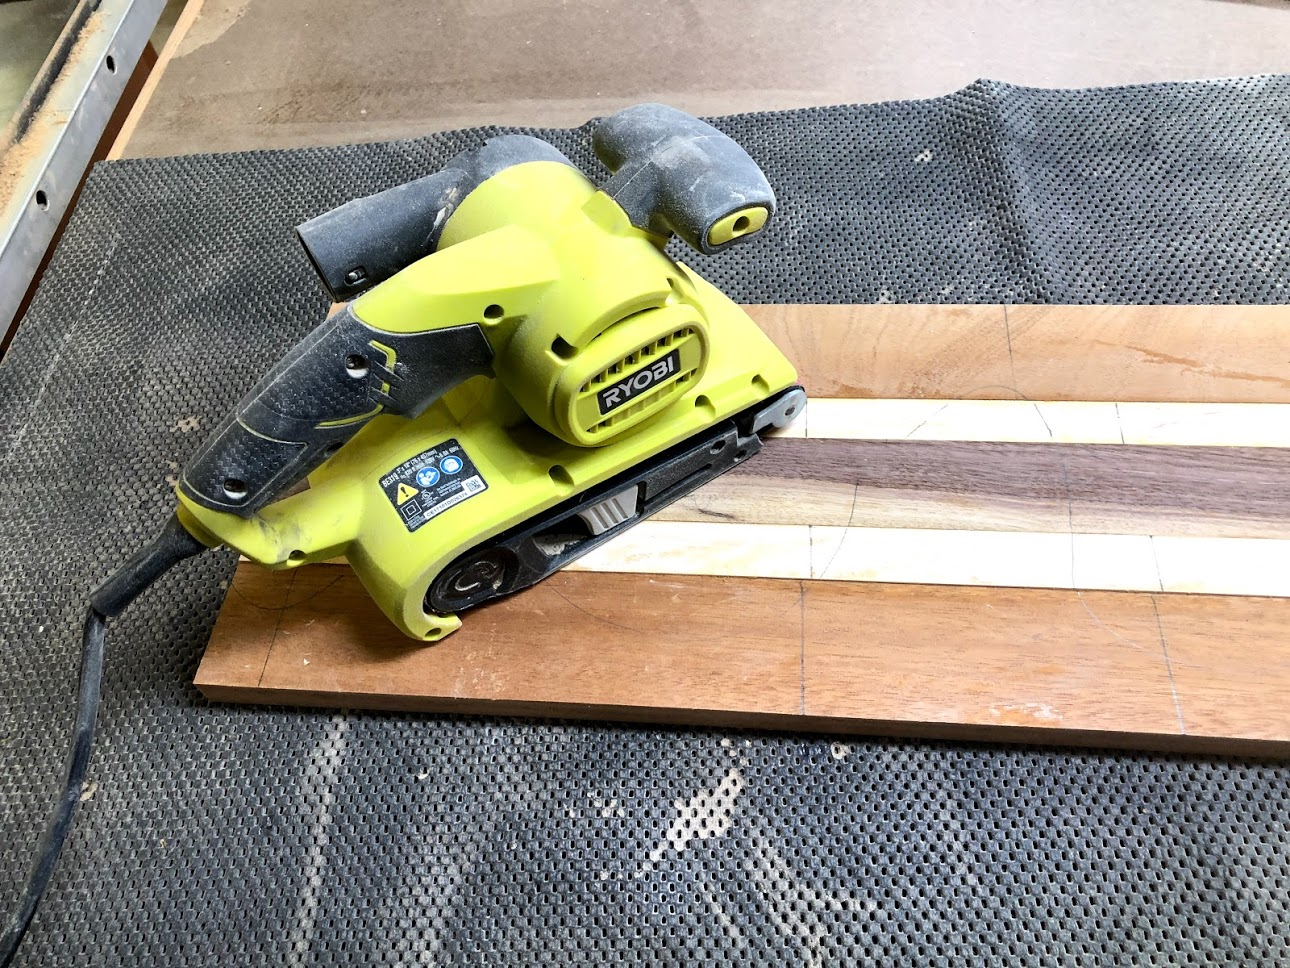 Here is my belt sander going to town on the panel, I drew pencil lines across all the edges of the mating pieces and when the pencil lines disappear I know the panel is flat.